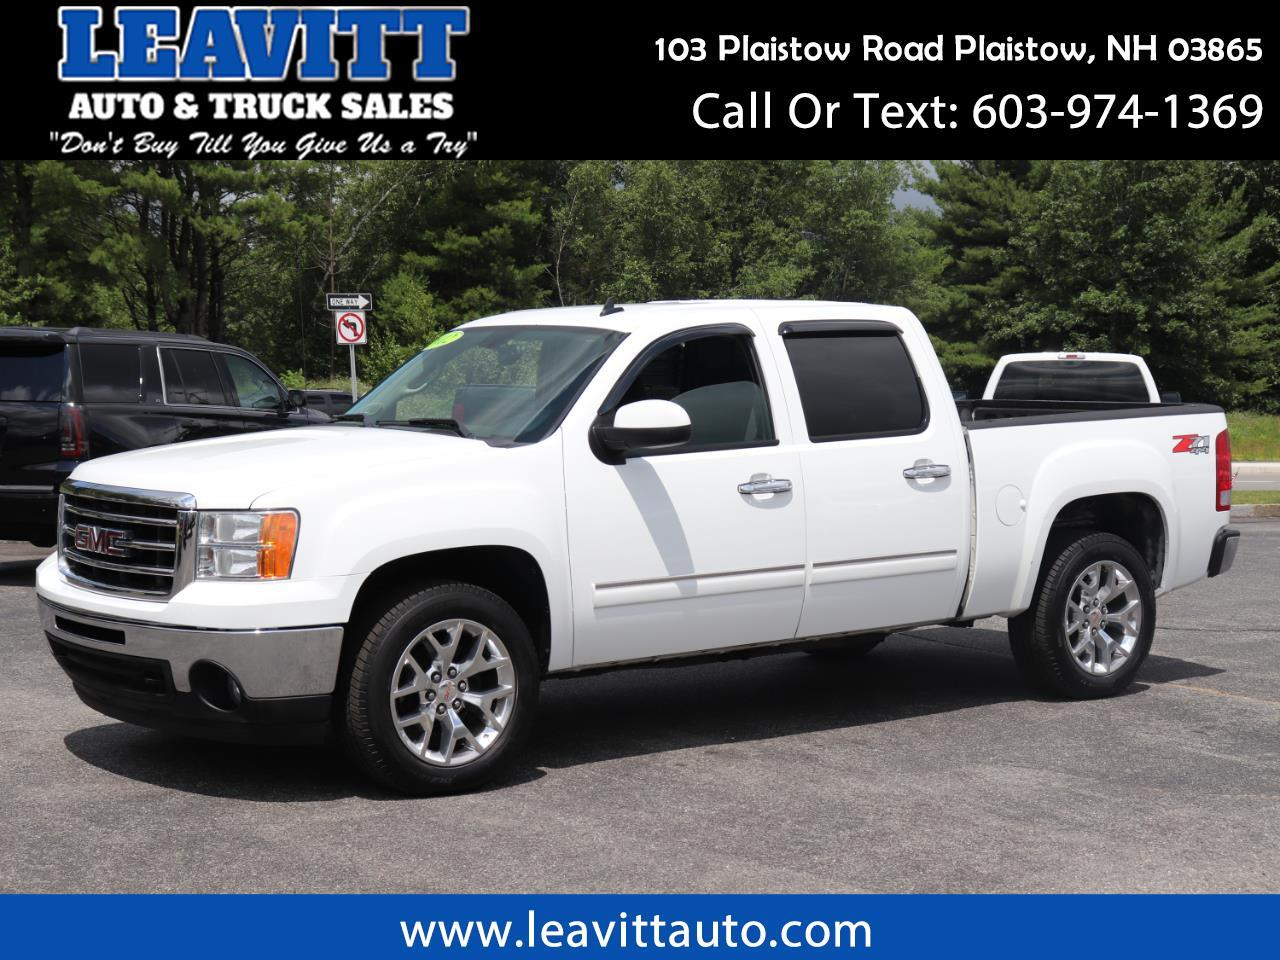 2012 GMC Sierra 1500 SLT CREW CAB 4X4 LEATHER CLEAN!!!